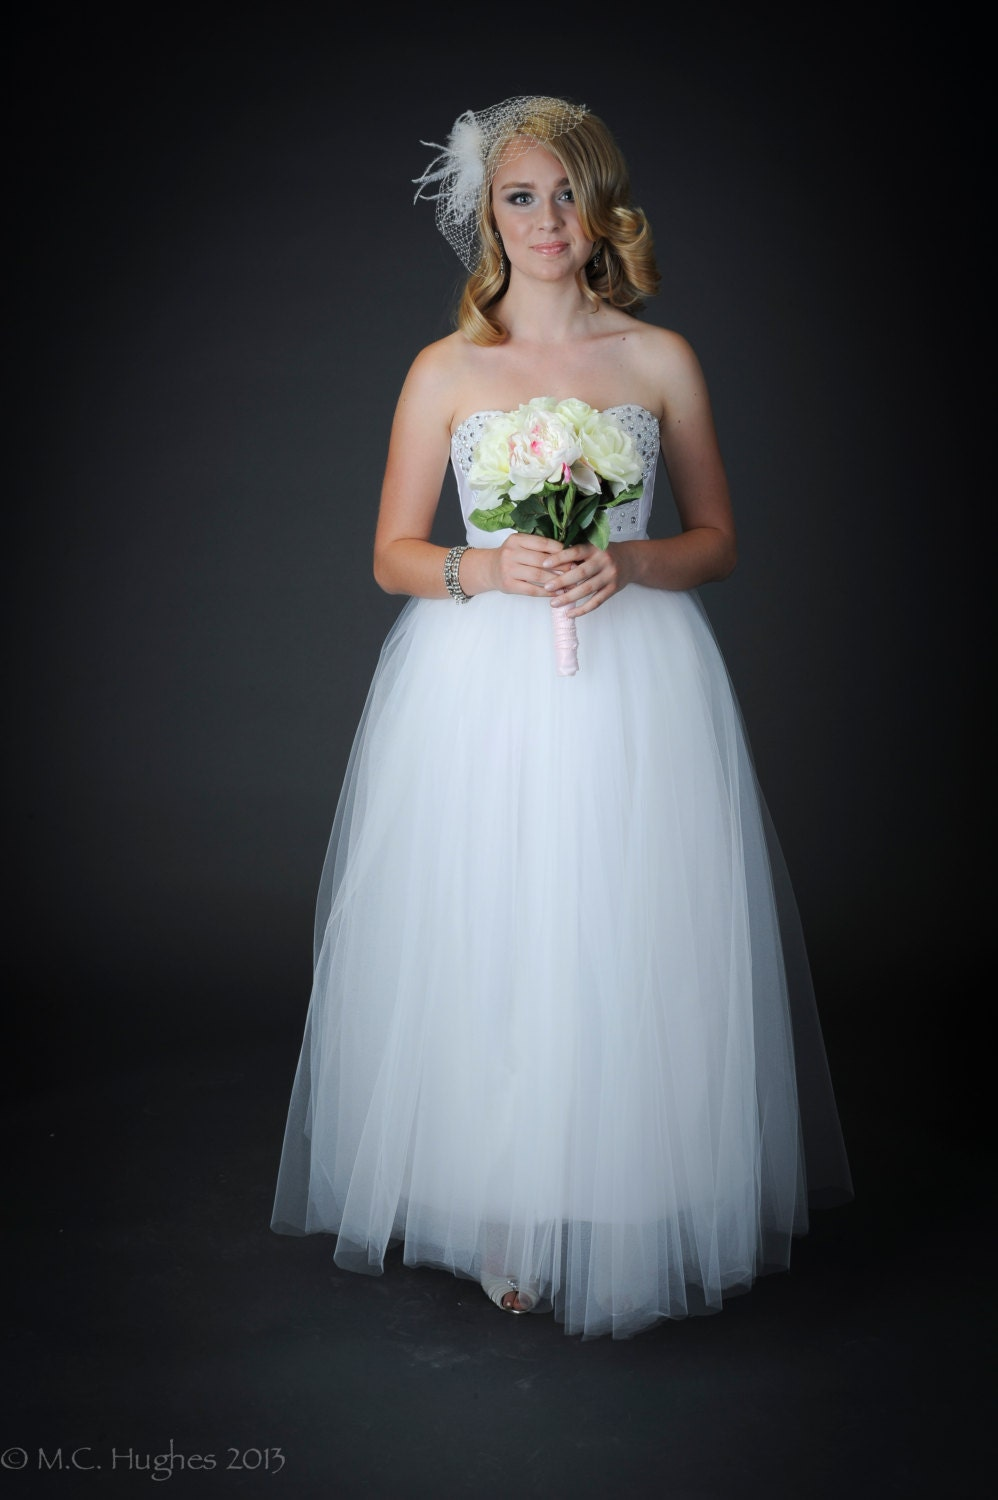 Where To Find A Bridal Skirt To Attach To Wear On Top Of